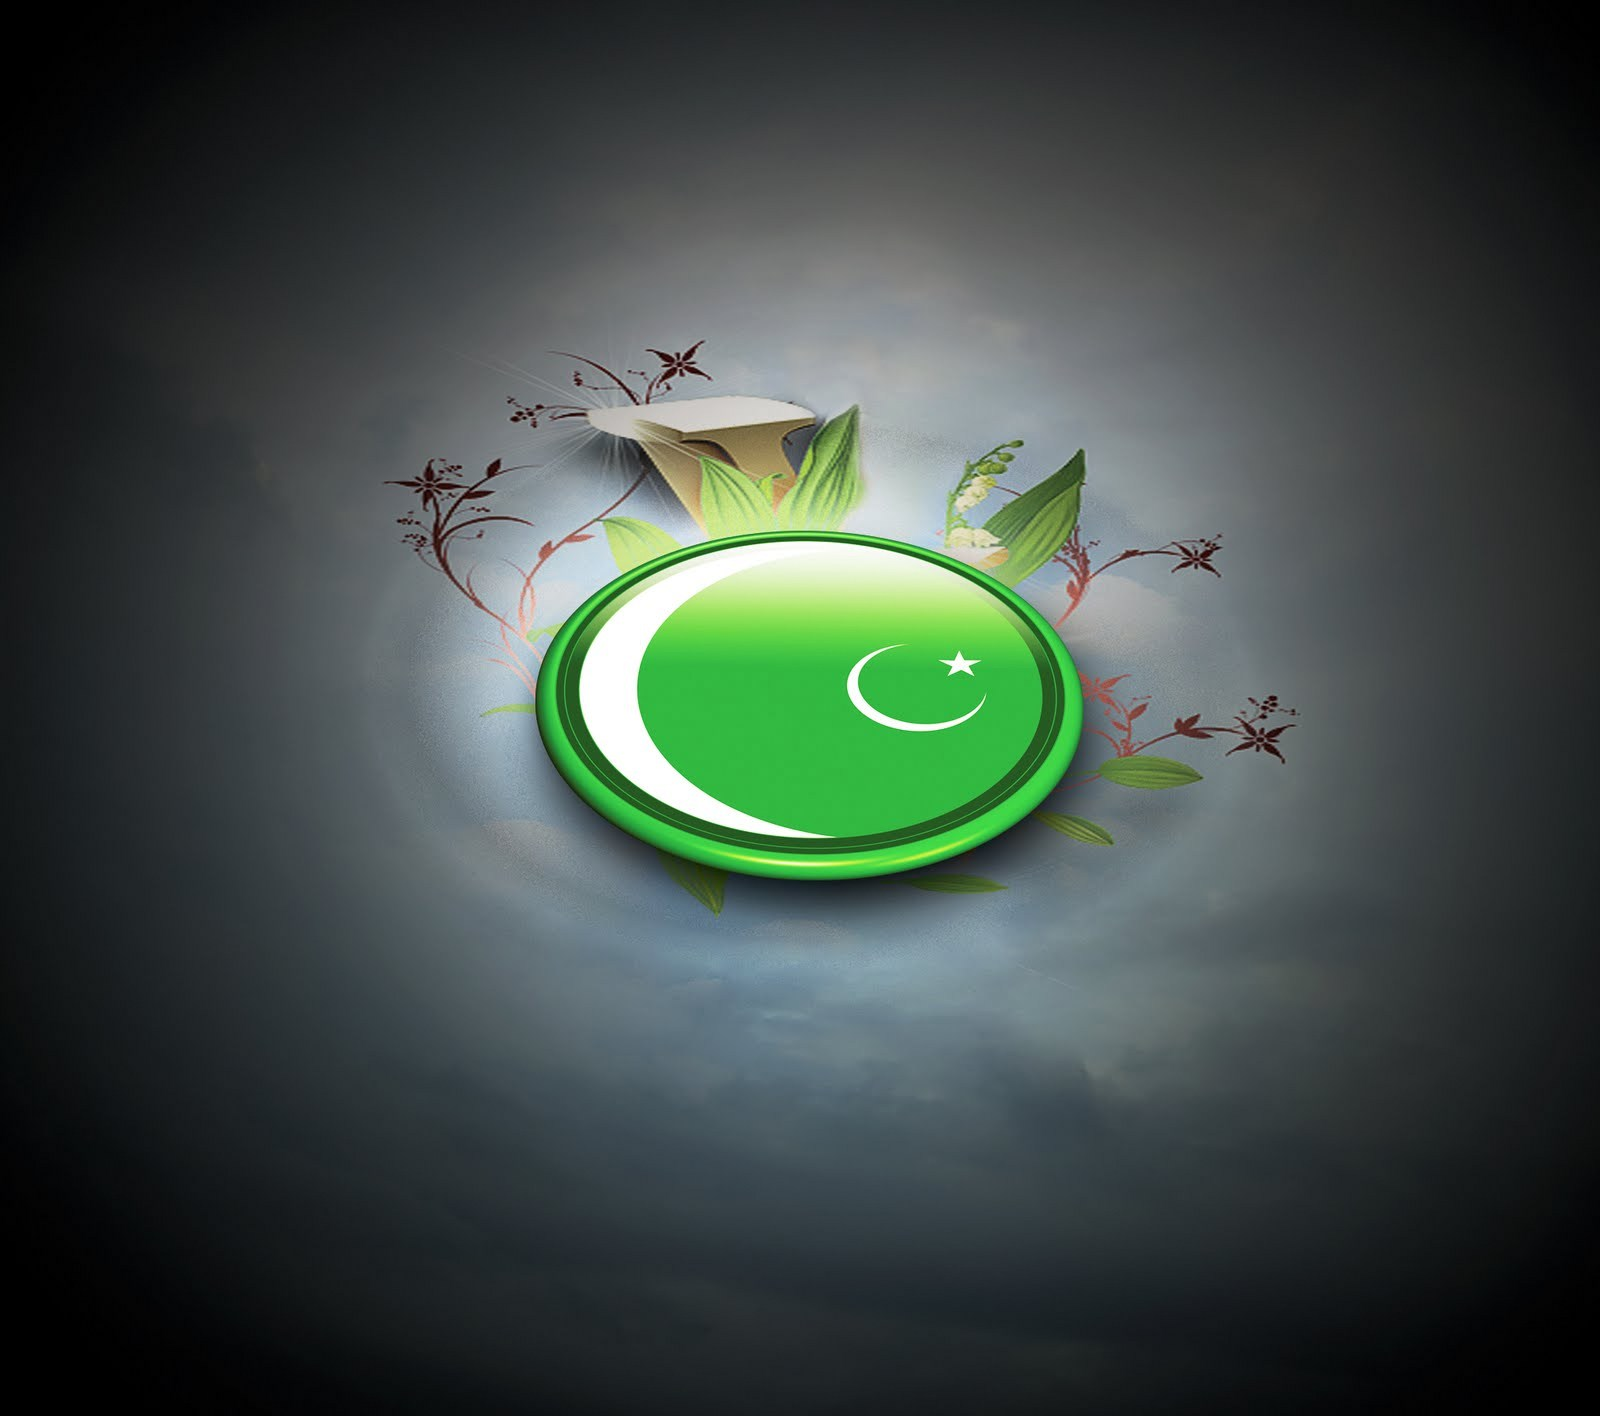 http://1.bp.blogspot.com/--2f6kfu3TAk/UBu5QaR04OI/AAAAAAAAGzg/lNnuPYGt_Ks/s1600/Pakistan-Flags-Wallpapers-1600x1416-047.jpg